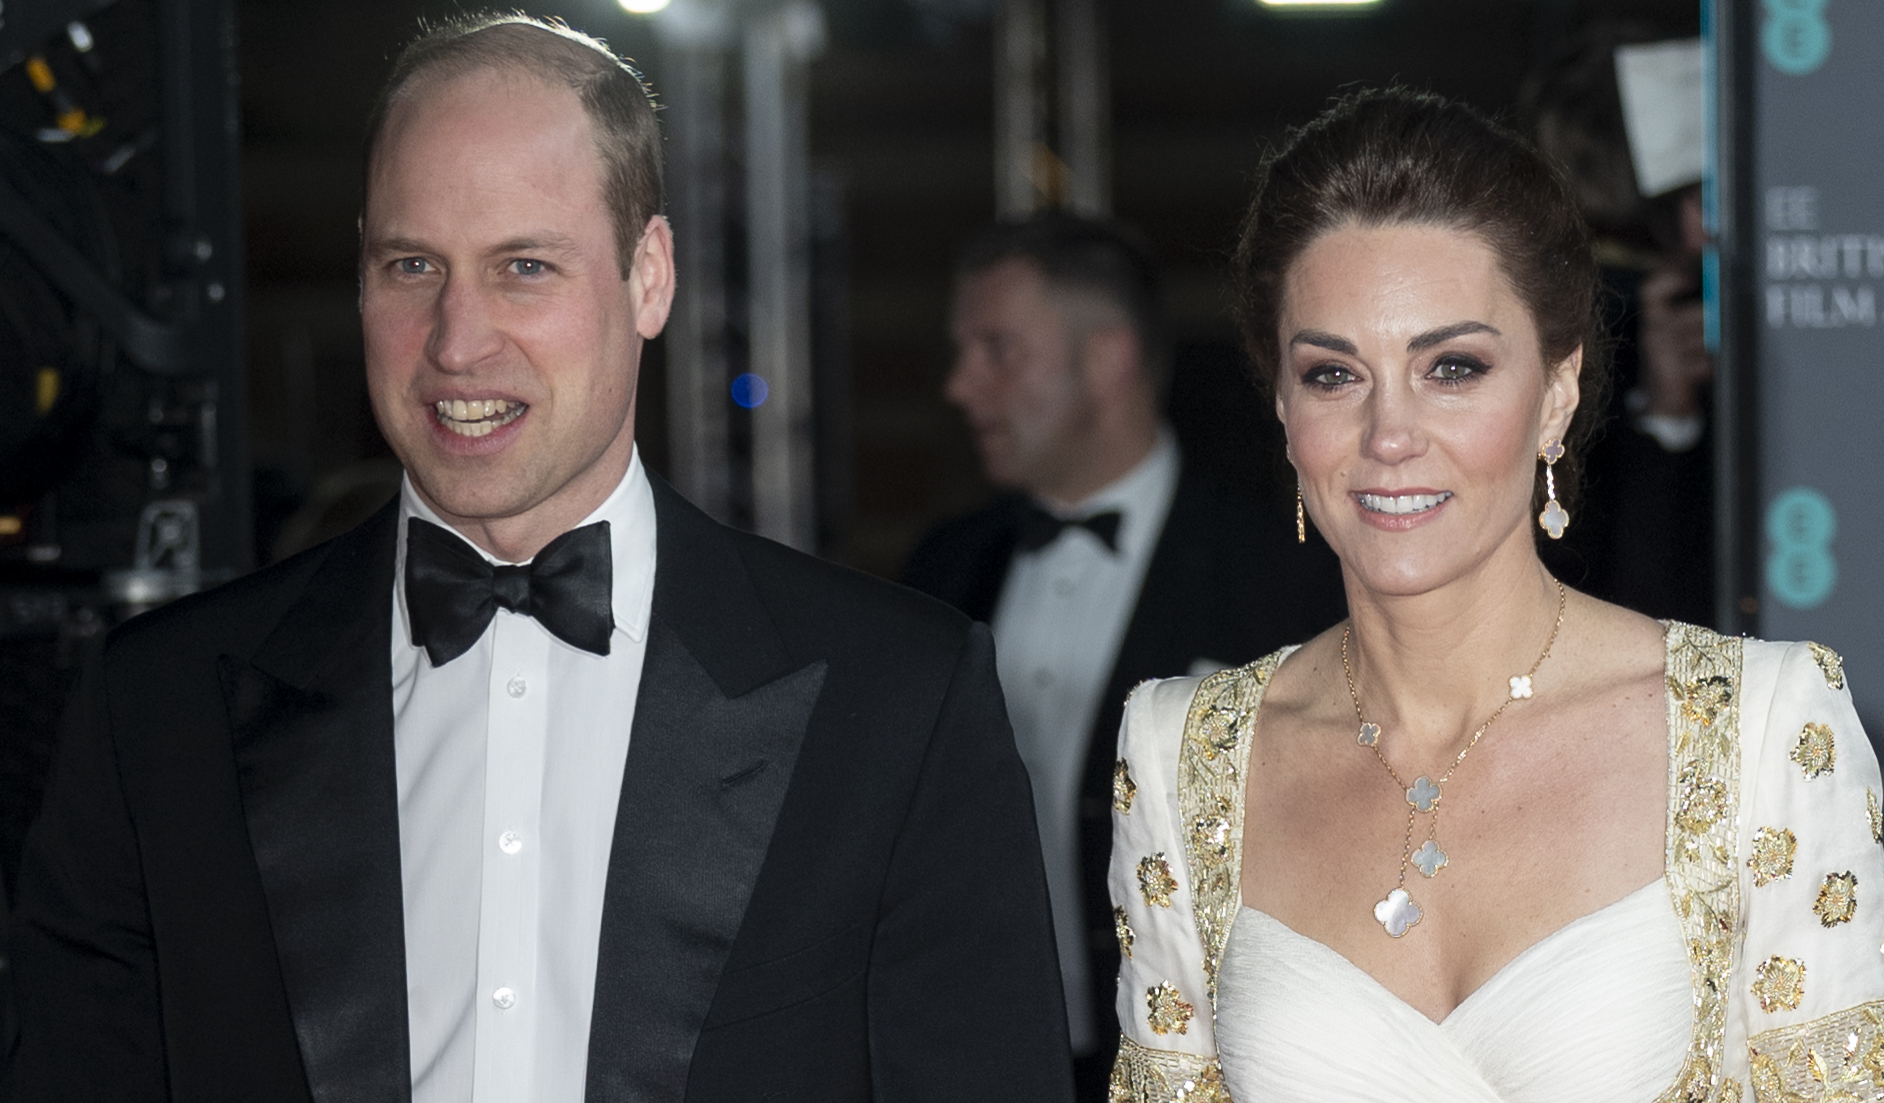 Prince William, Duke of Cambridge and Catherine, Duchess of Cambridge attend the EE British Academy Film Awards 2020 at Royal Albert Hall on February 2, 2020 in London, England. (Photo by Mark Cuthbert/UK Press via Getty Images)